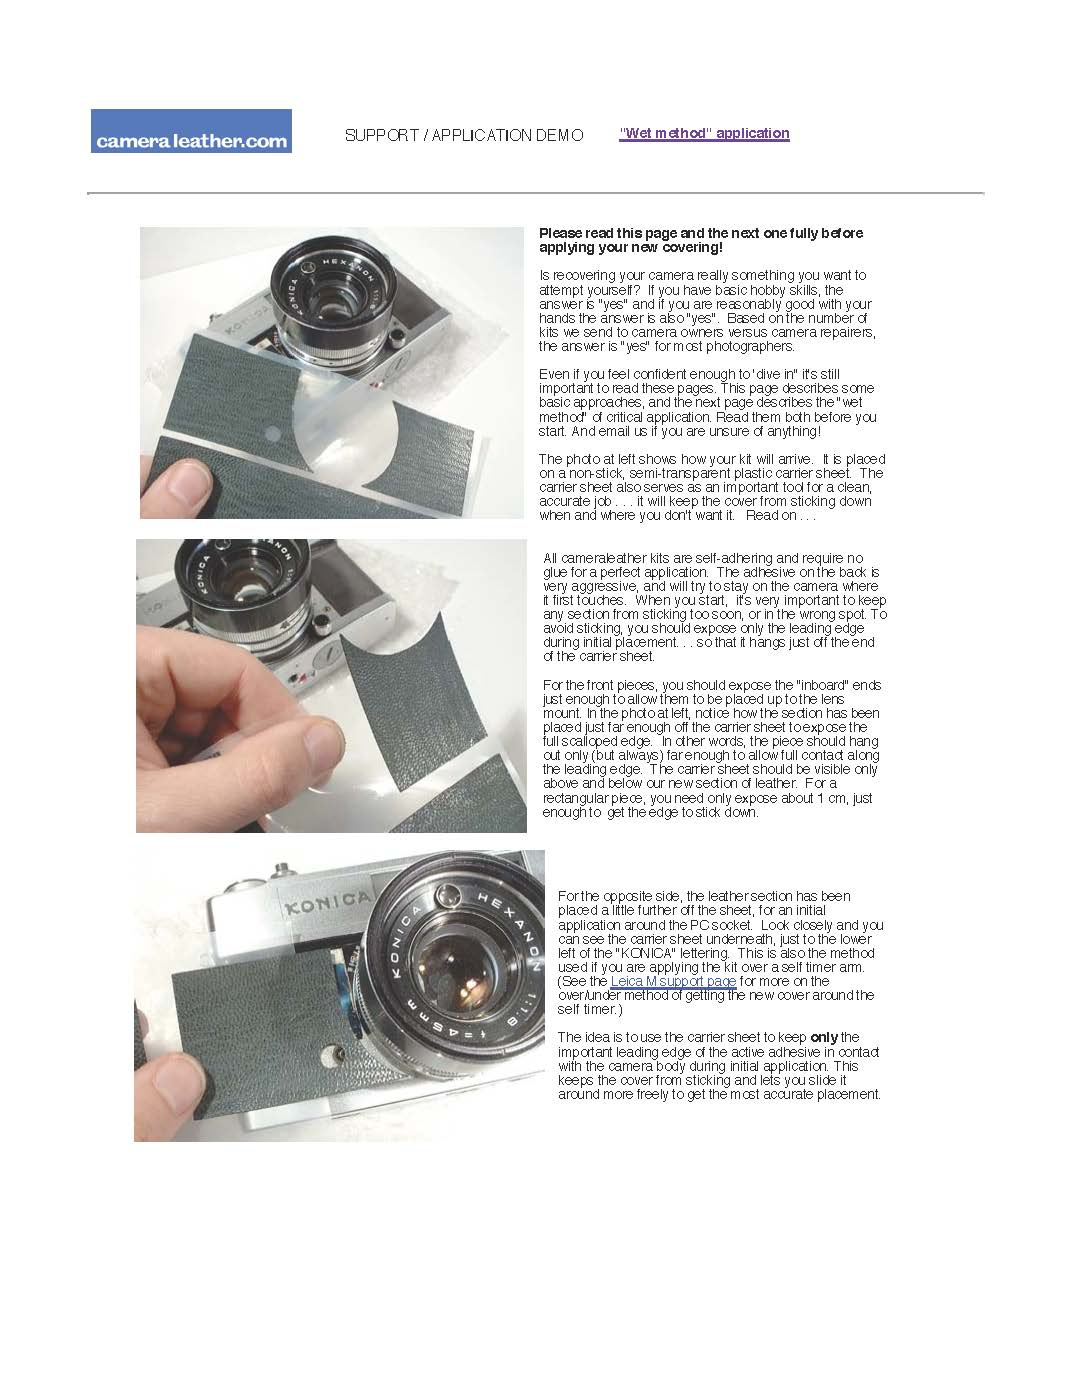 Cameraleather-application guide 1_Page_1.jpg